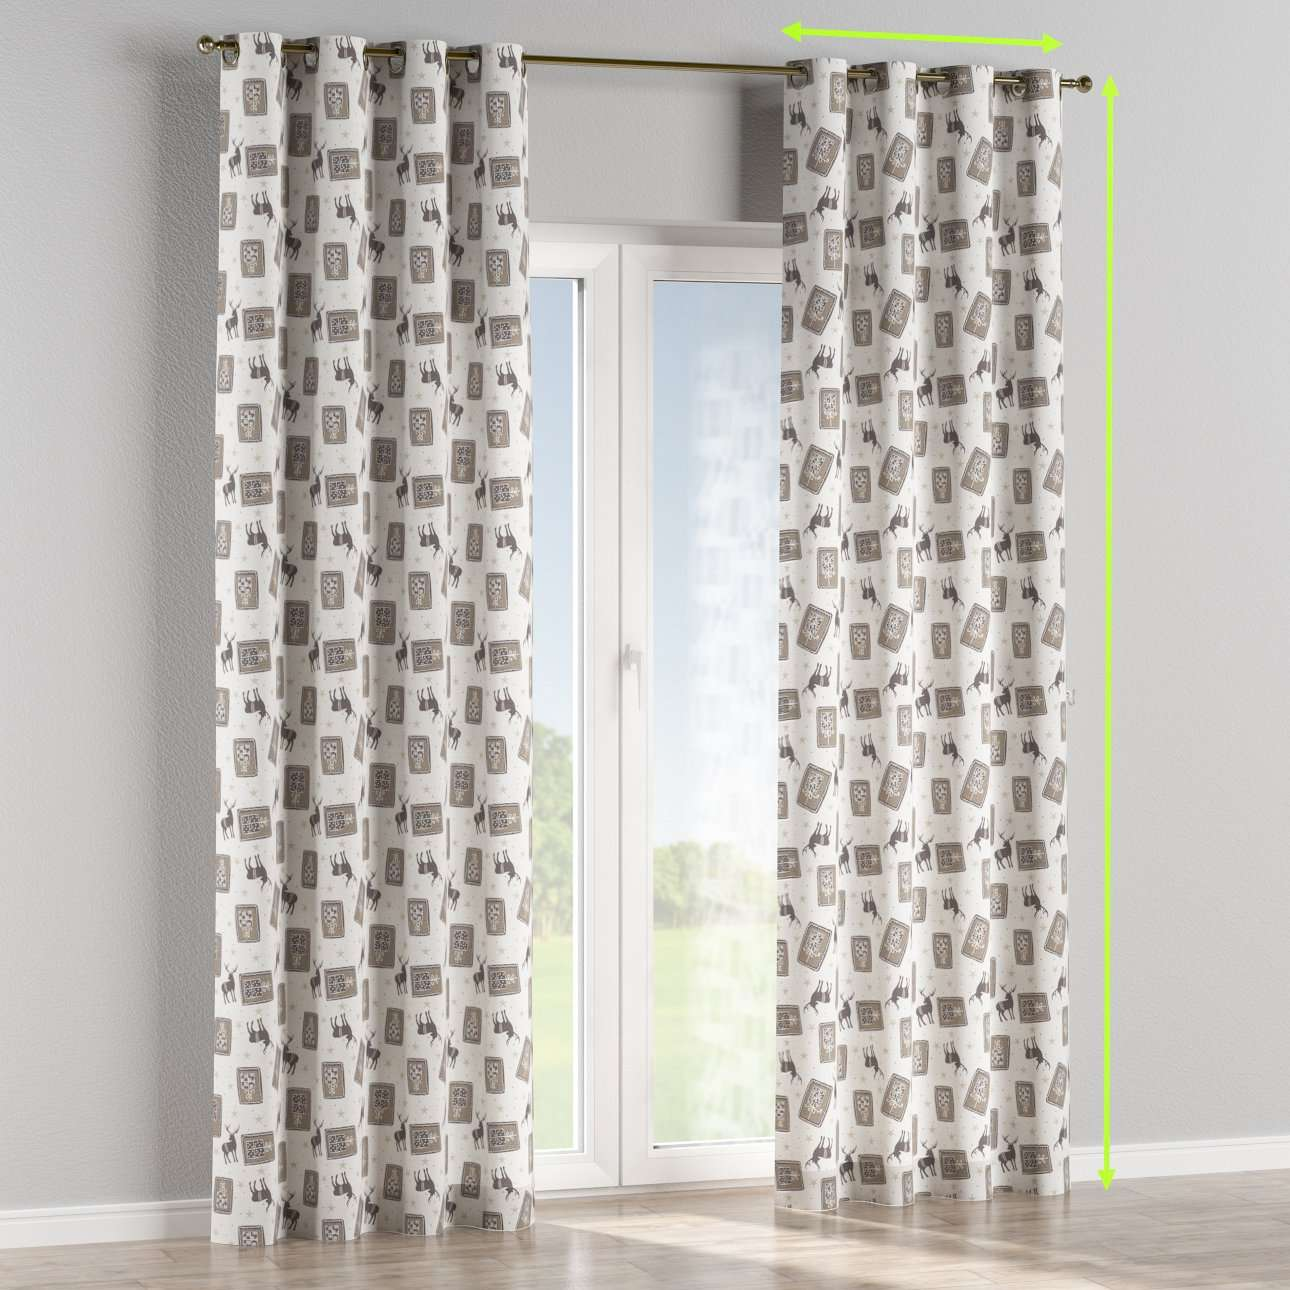 Eyelet curtains in collection Nordic, fabric: 630-10